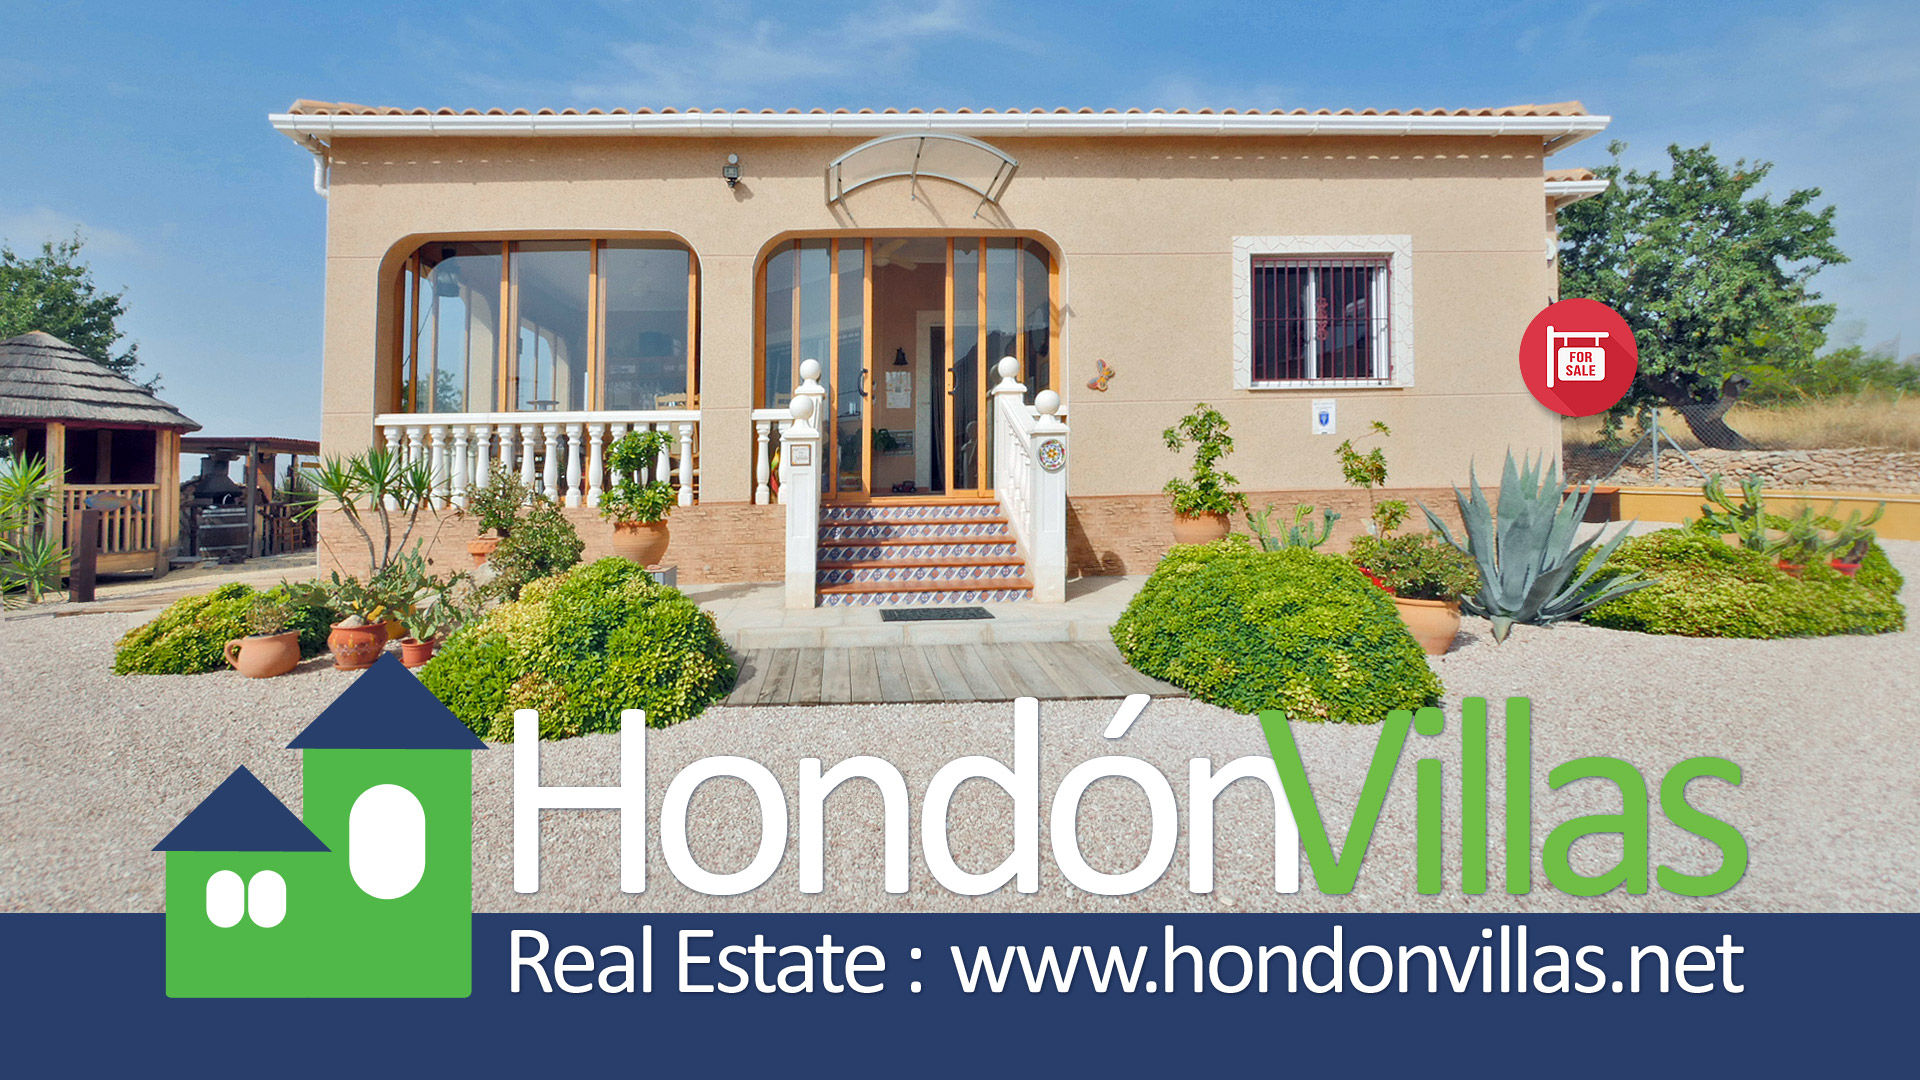 Foe Sale: Villa in Macisvenda, Costa Blanca South.